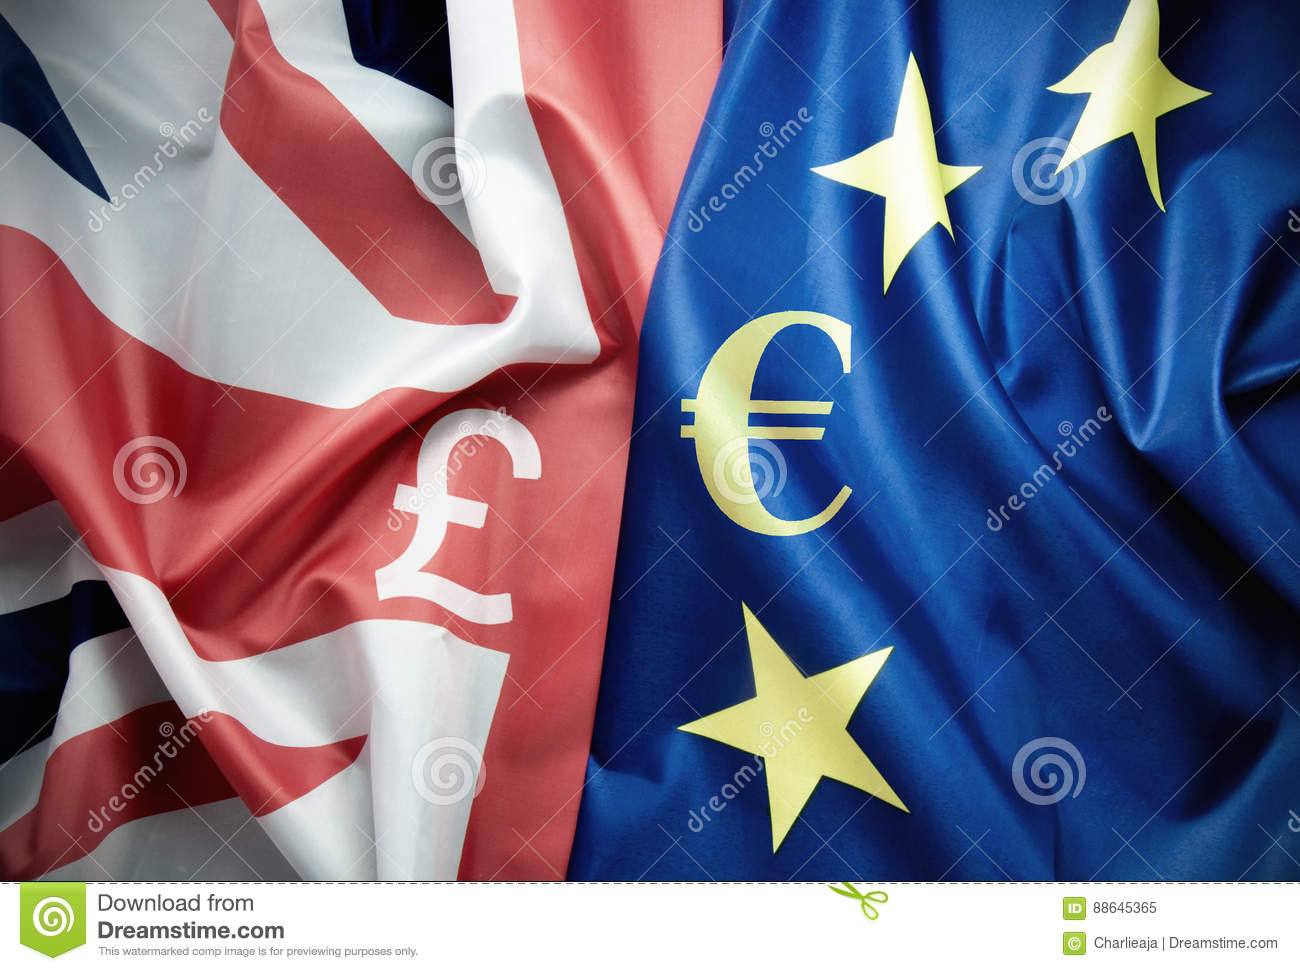 The Pound And The Euro Stock Image Image Of Flags Flag 88645365